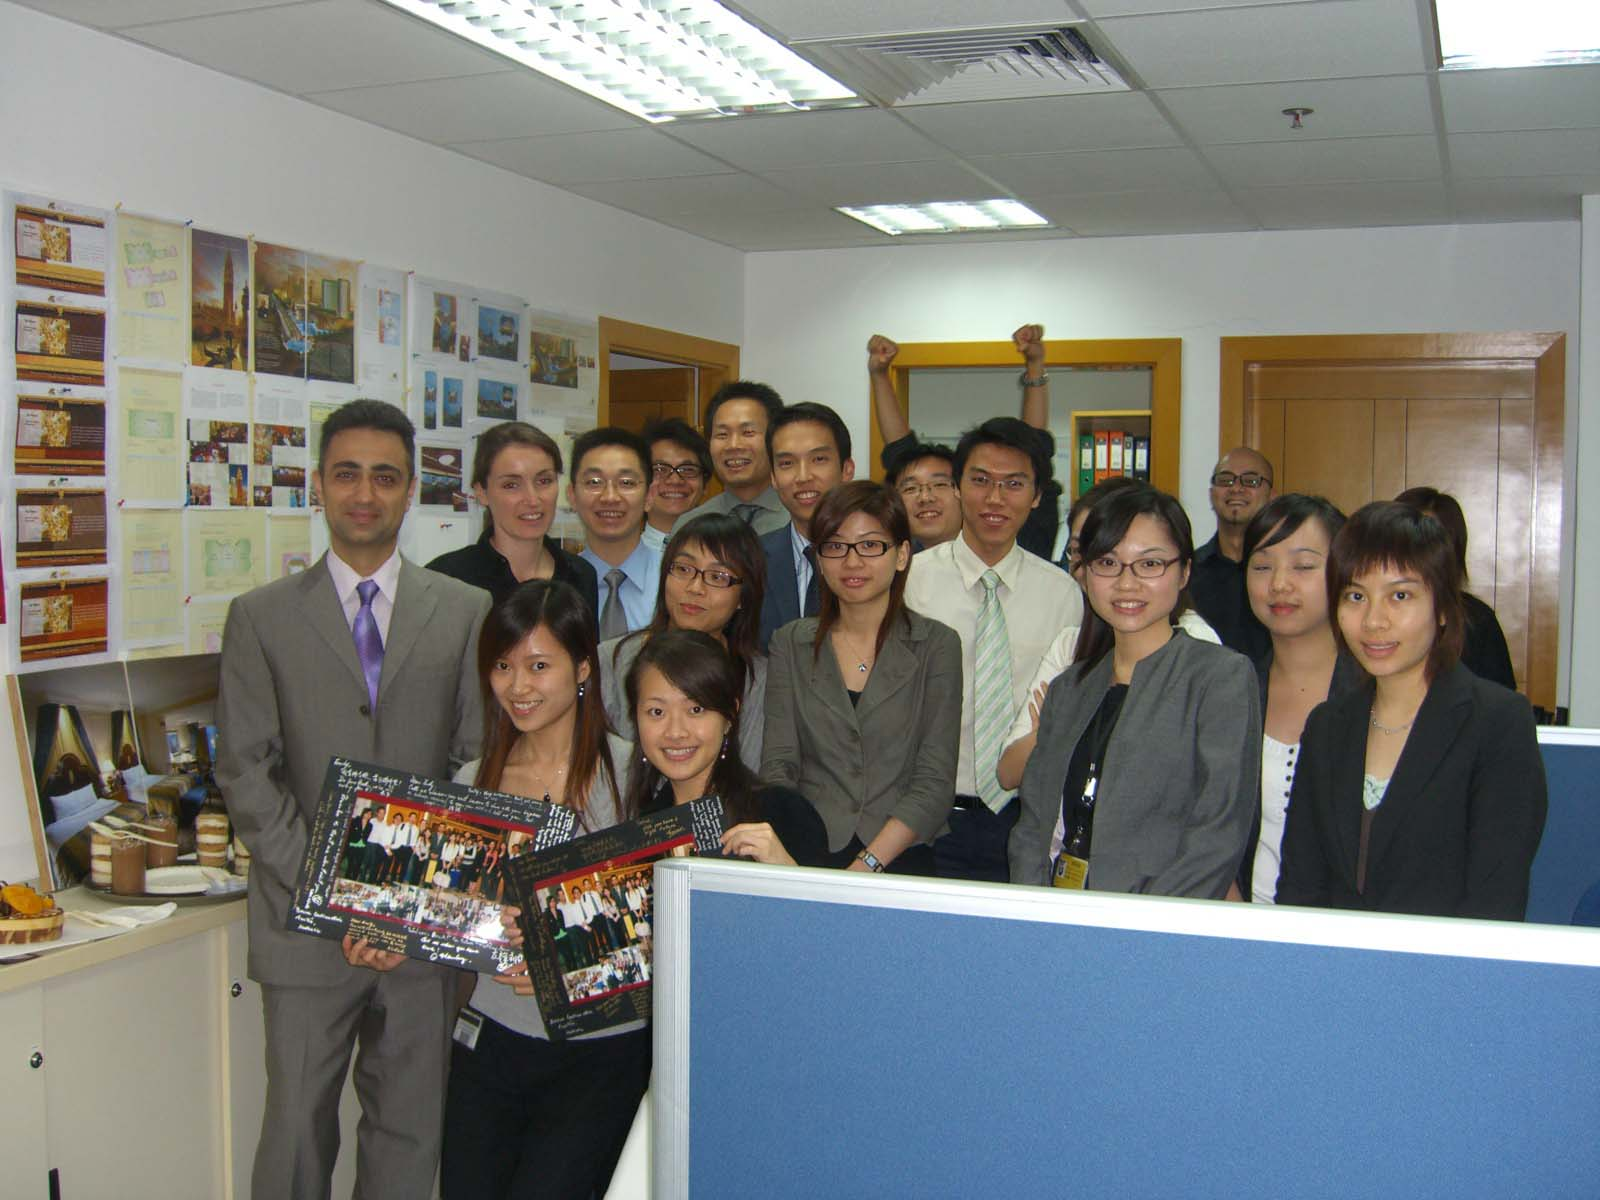 Sands Strategic Marketing 2006 October